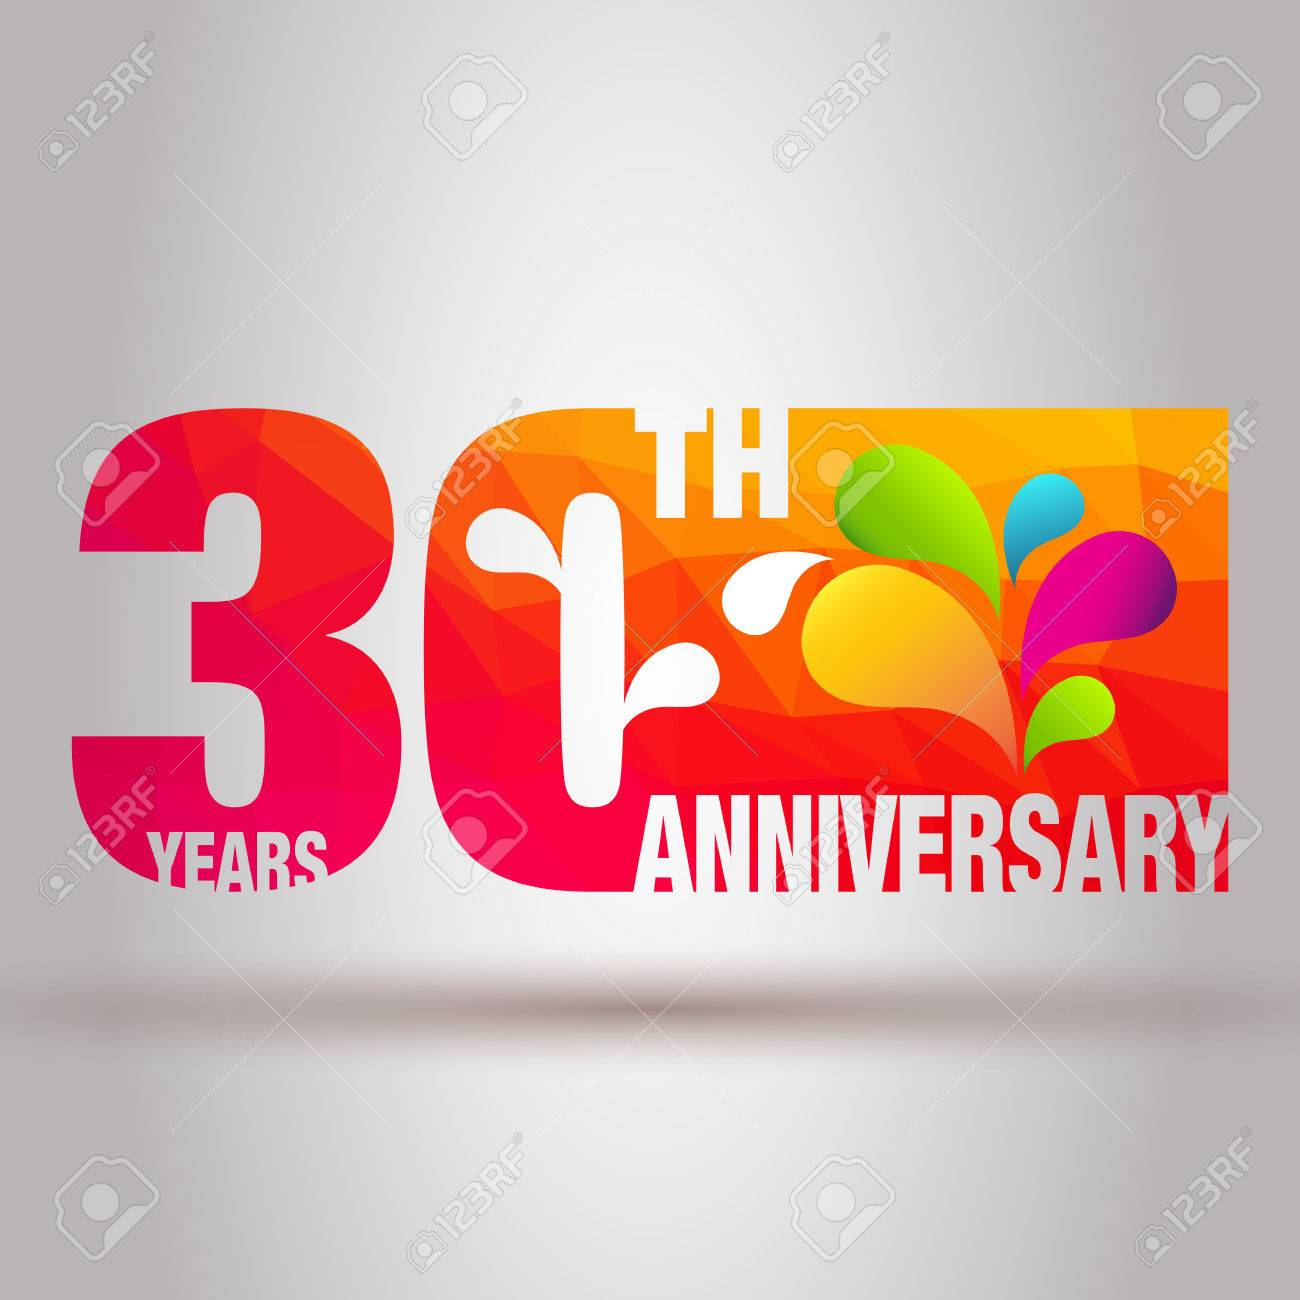 Anniversary Card Anniversary Background 30th Anniversary – Anniversary Card Template